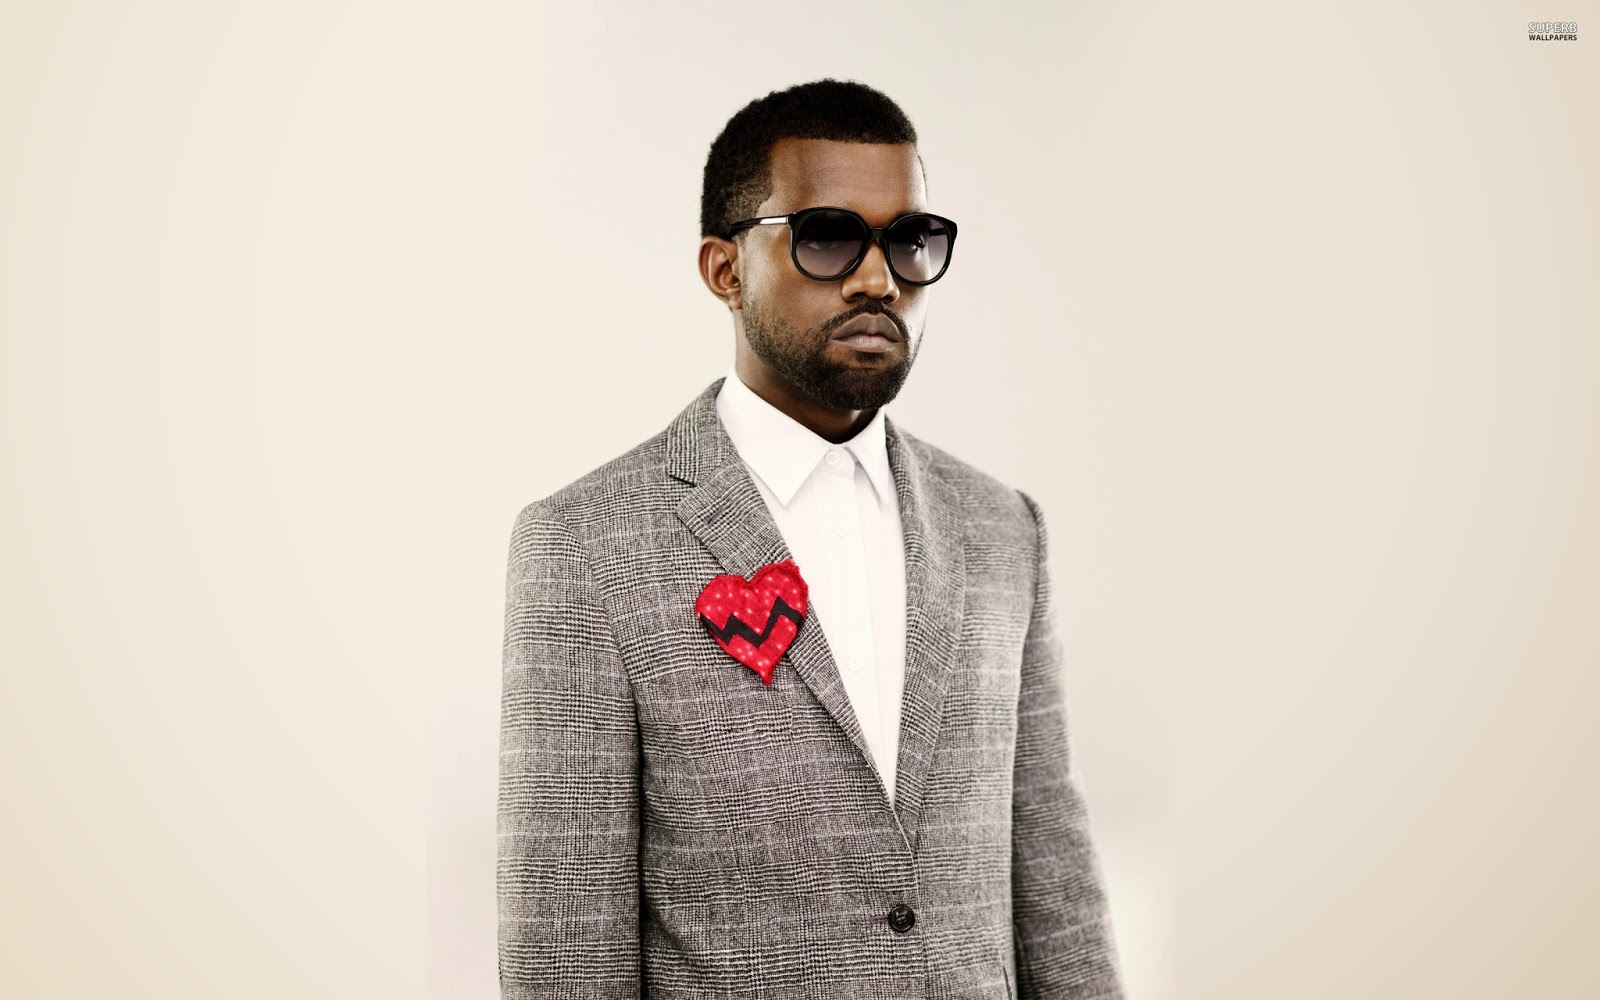 [DOWNLOAD SONG] Kanye West Follow God Mp3 Music - Free